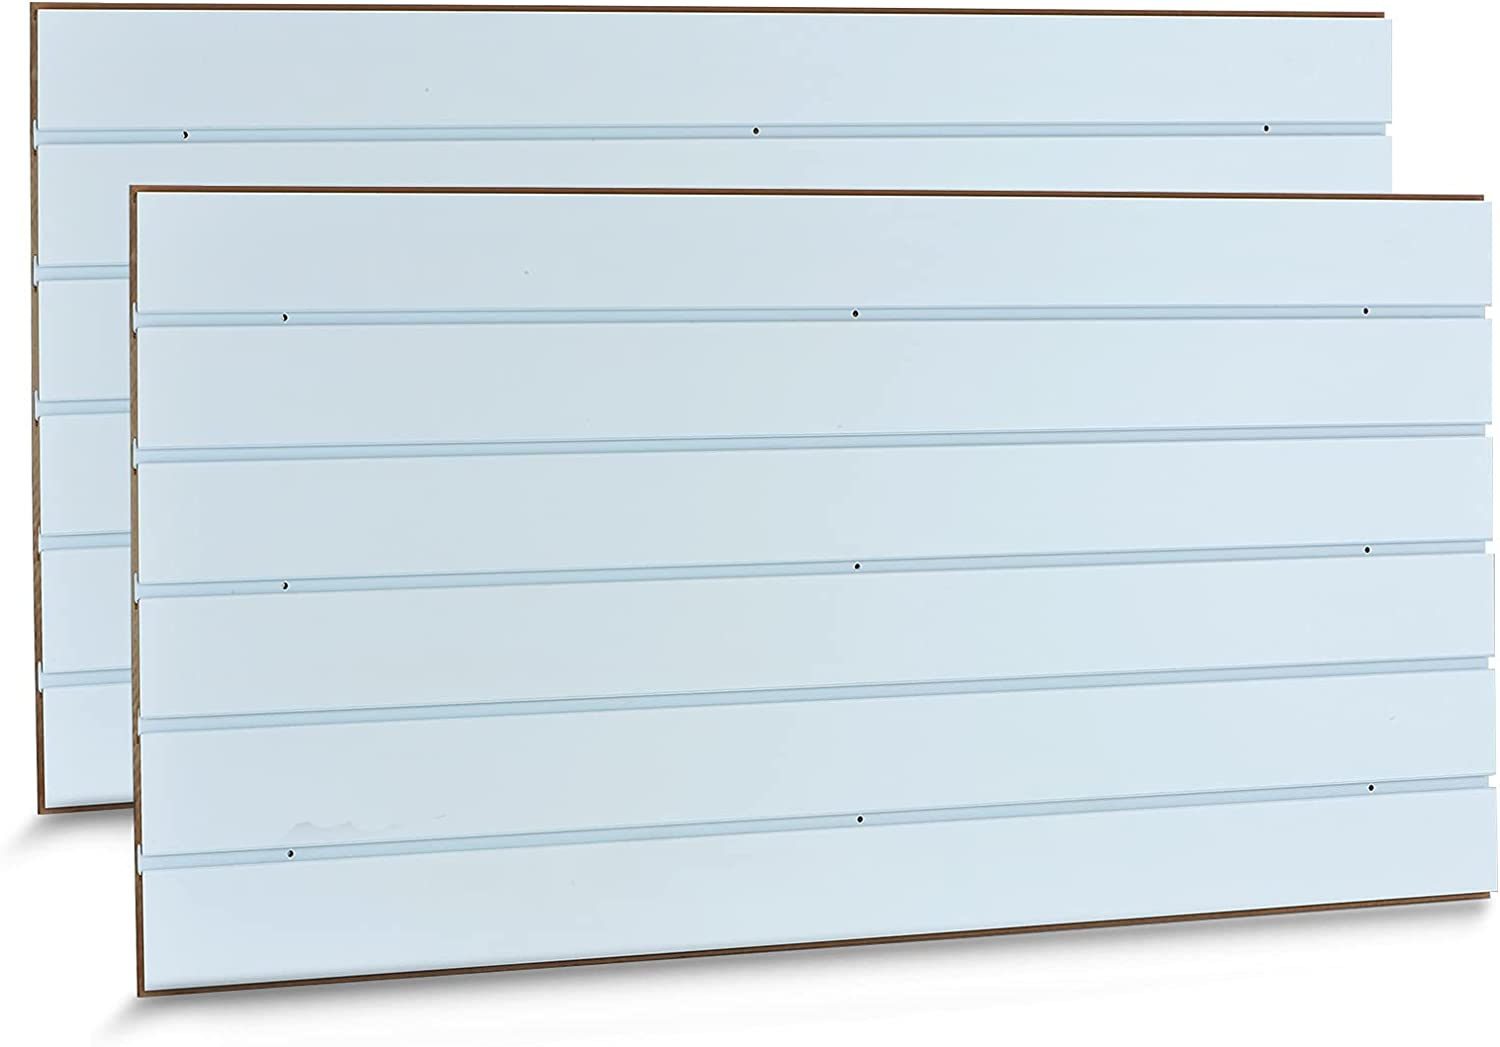 APL Display 4' Regular discount x 2' Slatwall Panels with High material Insert Removable Gloss